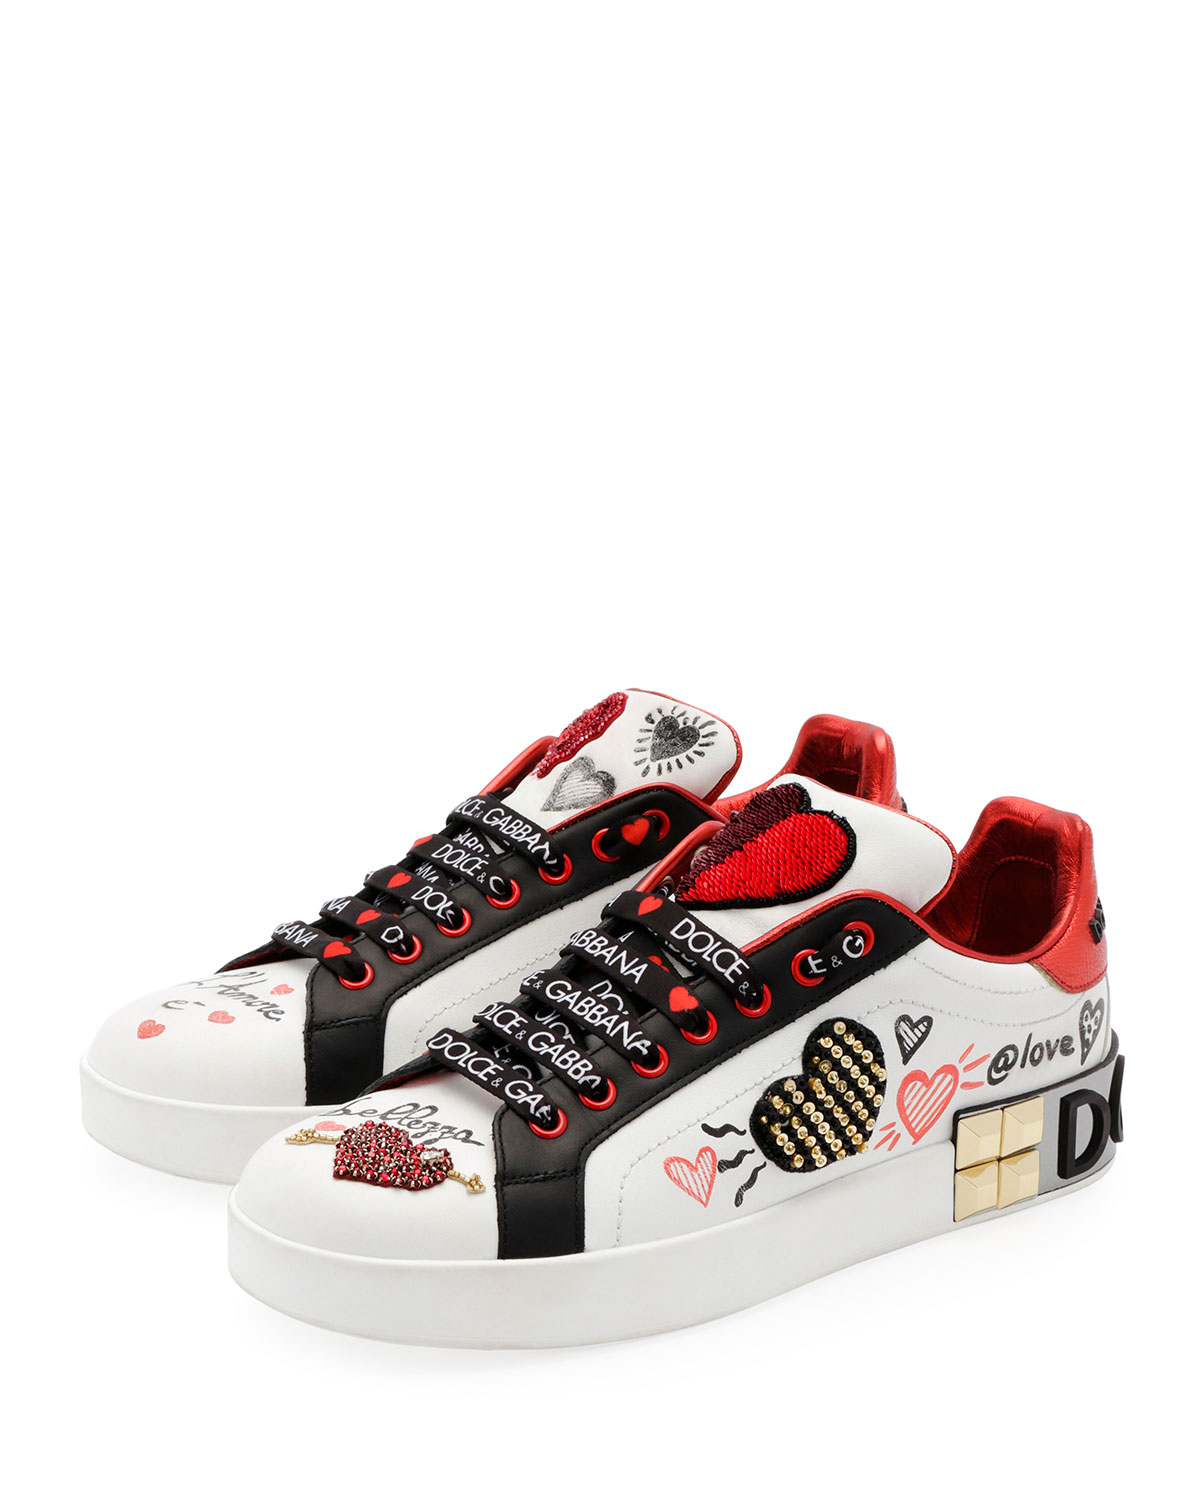 Dolce gabbana leather low top sneakers with graffiti hearts